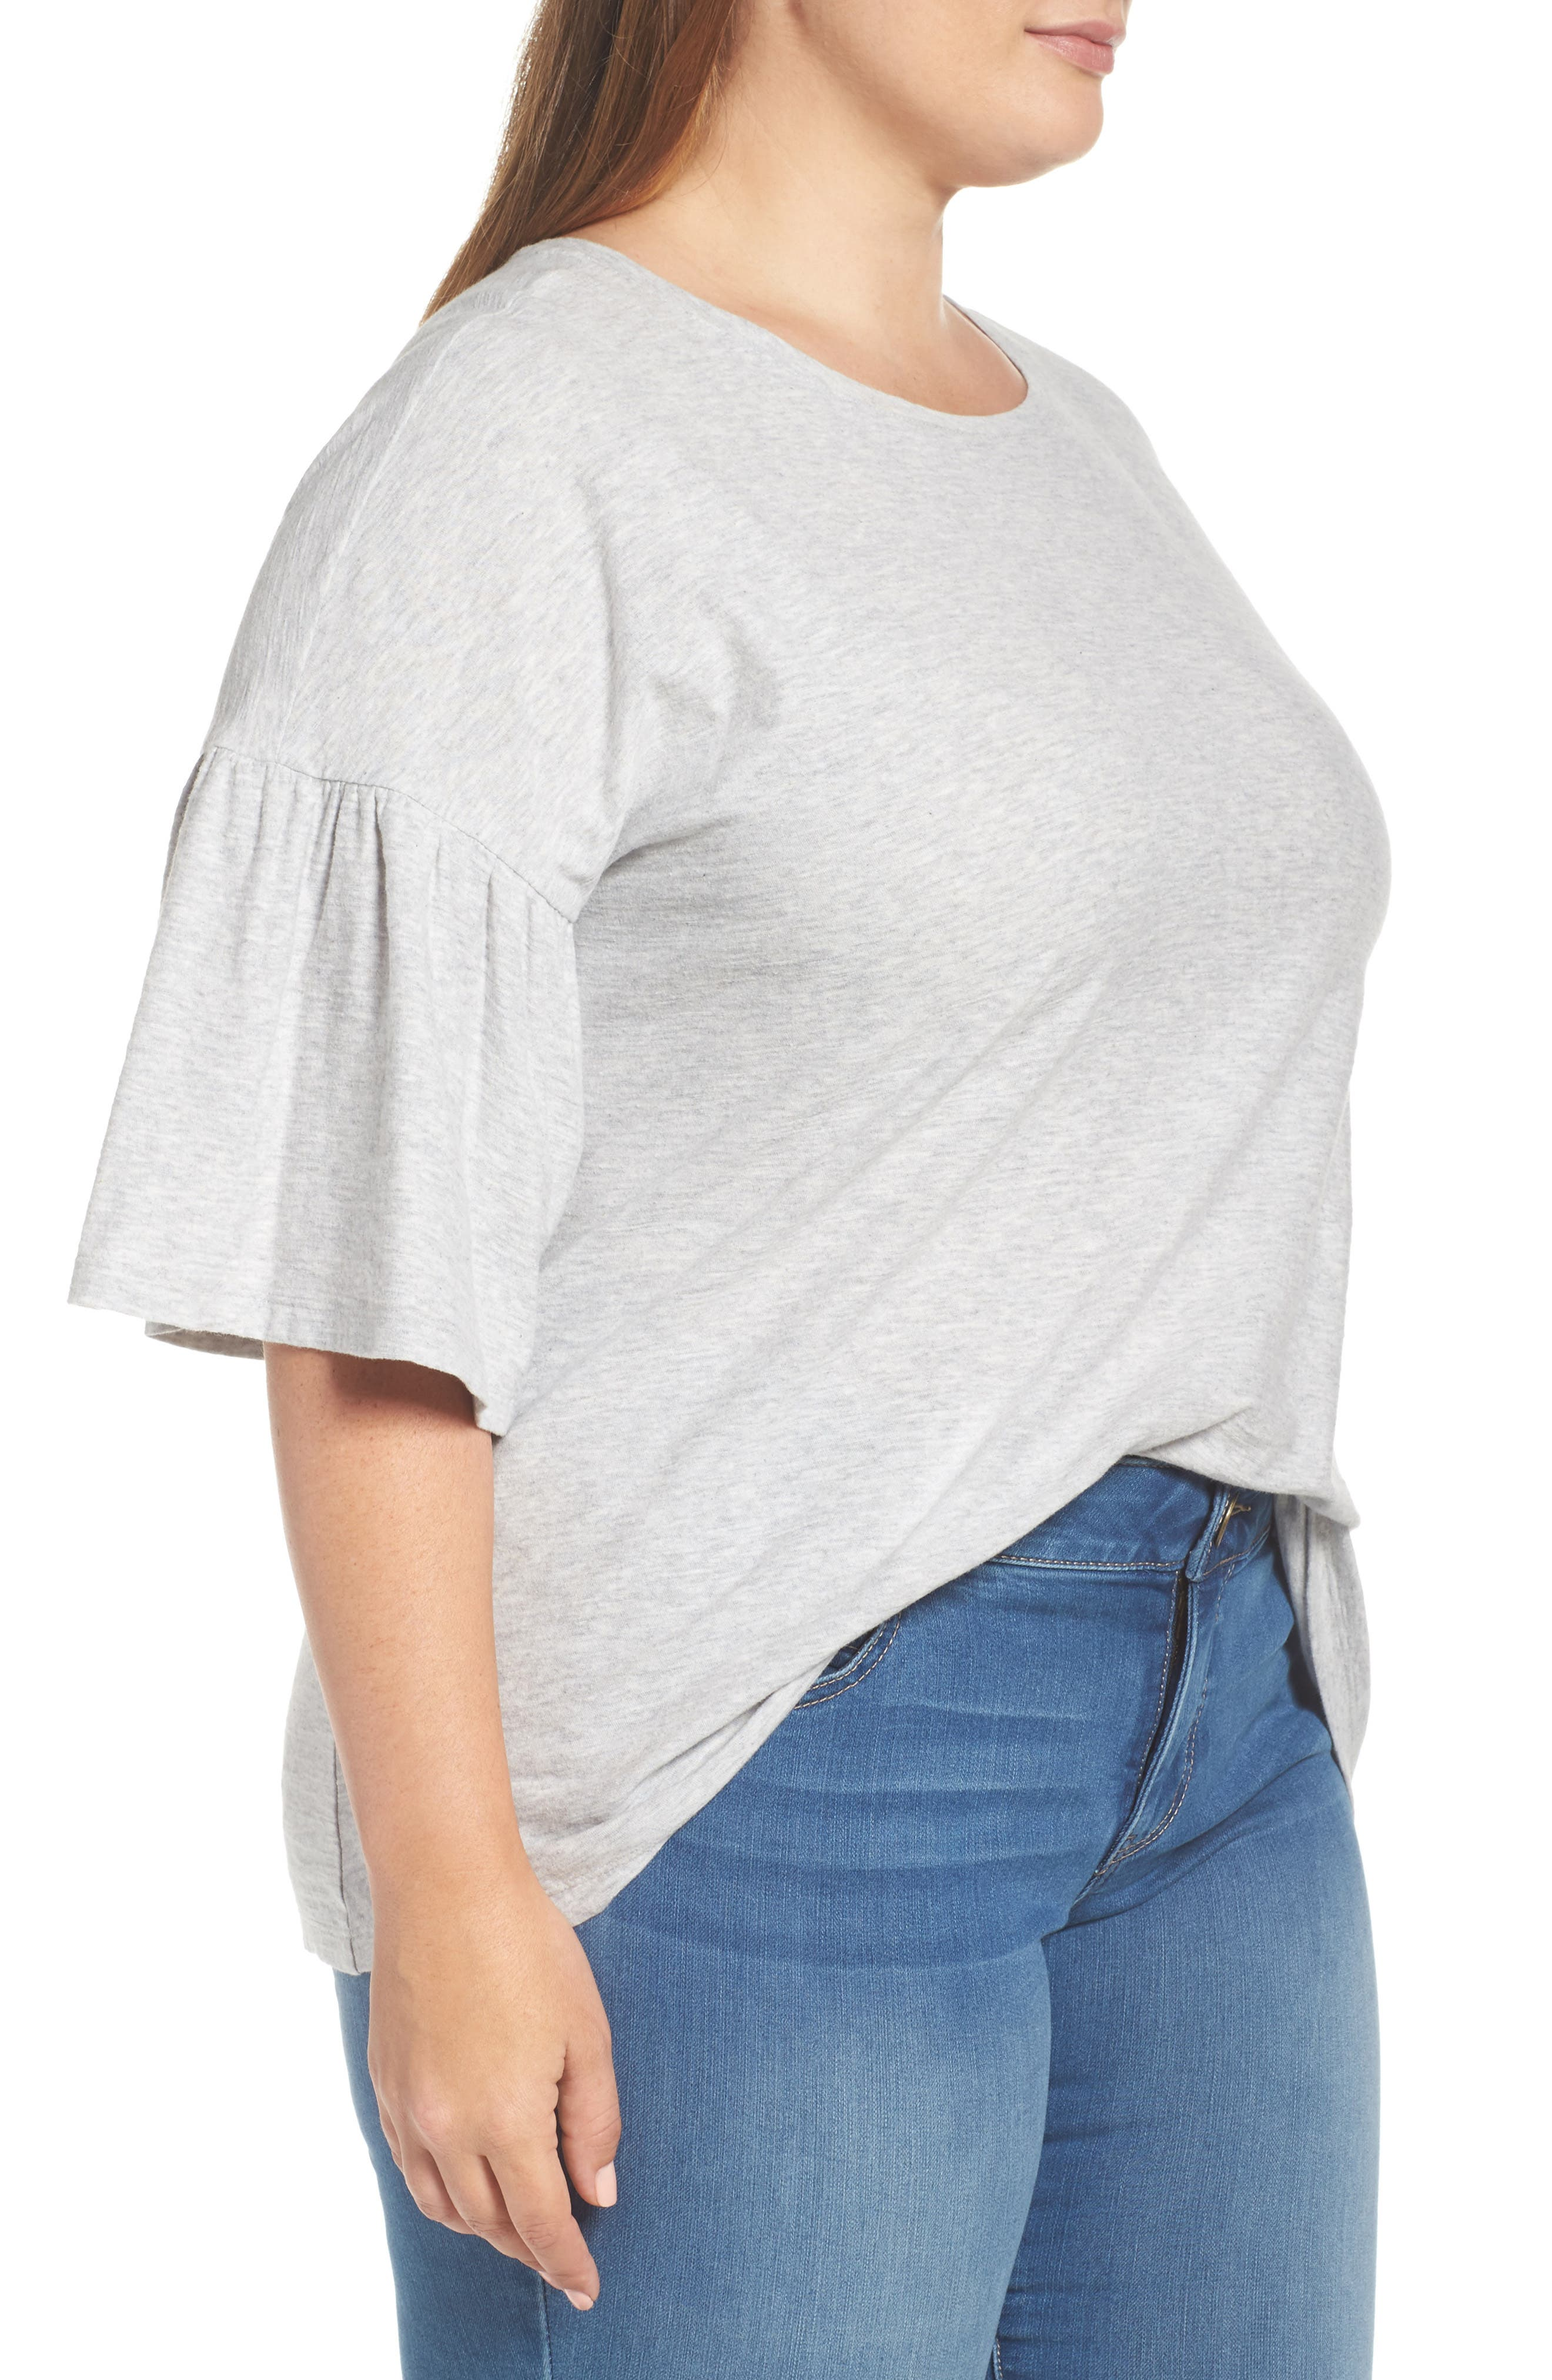 Alternate Image 3  - Vince Camuto Relaxed Bell Sleeve Cotton Tee (Plus Size)